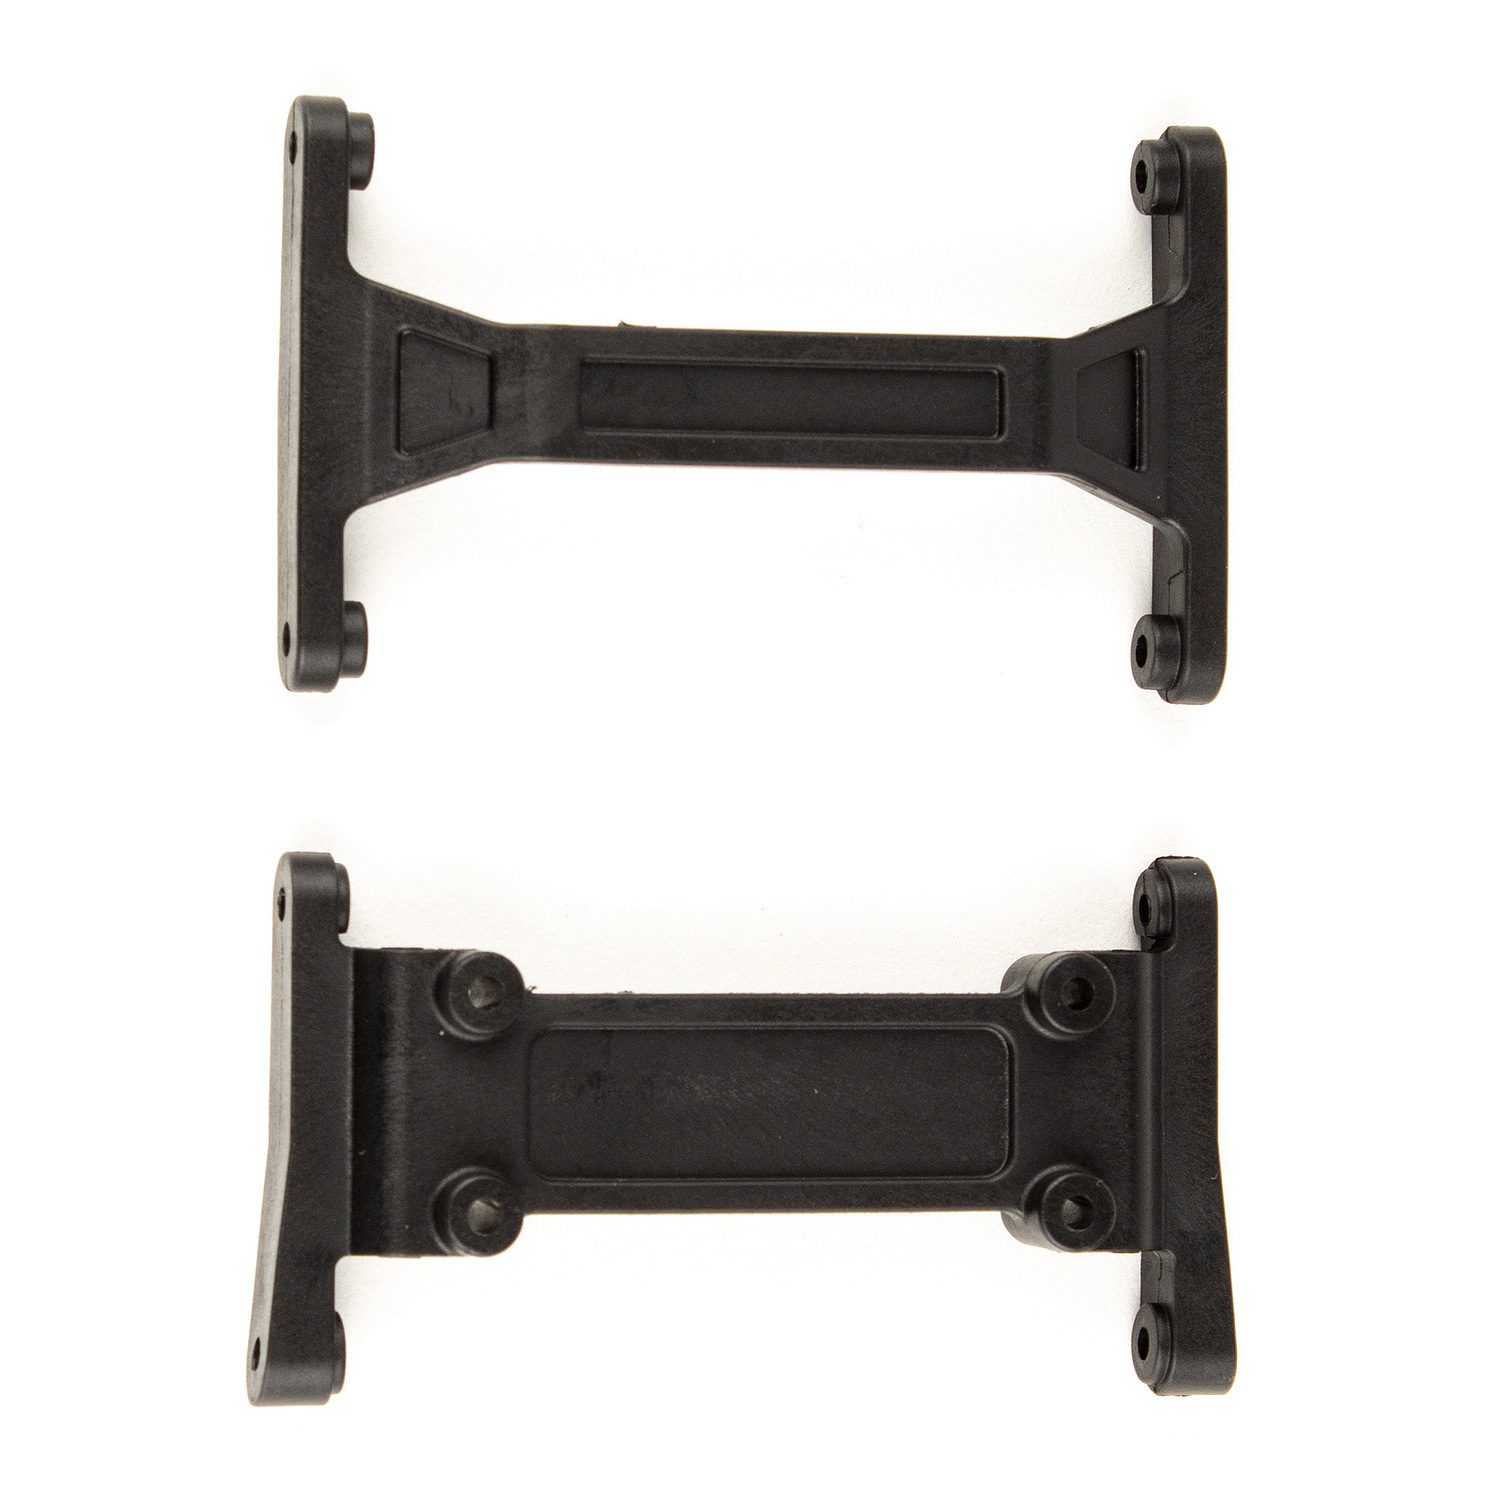 ELEMENT RC ENDURO FRAME MOUNTING PLATES